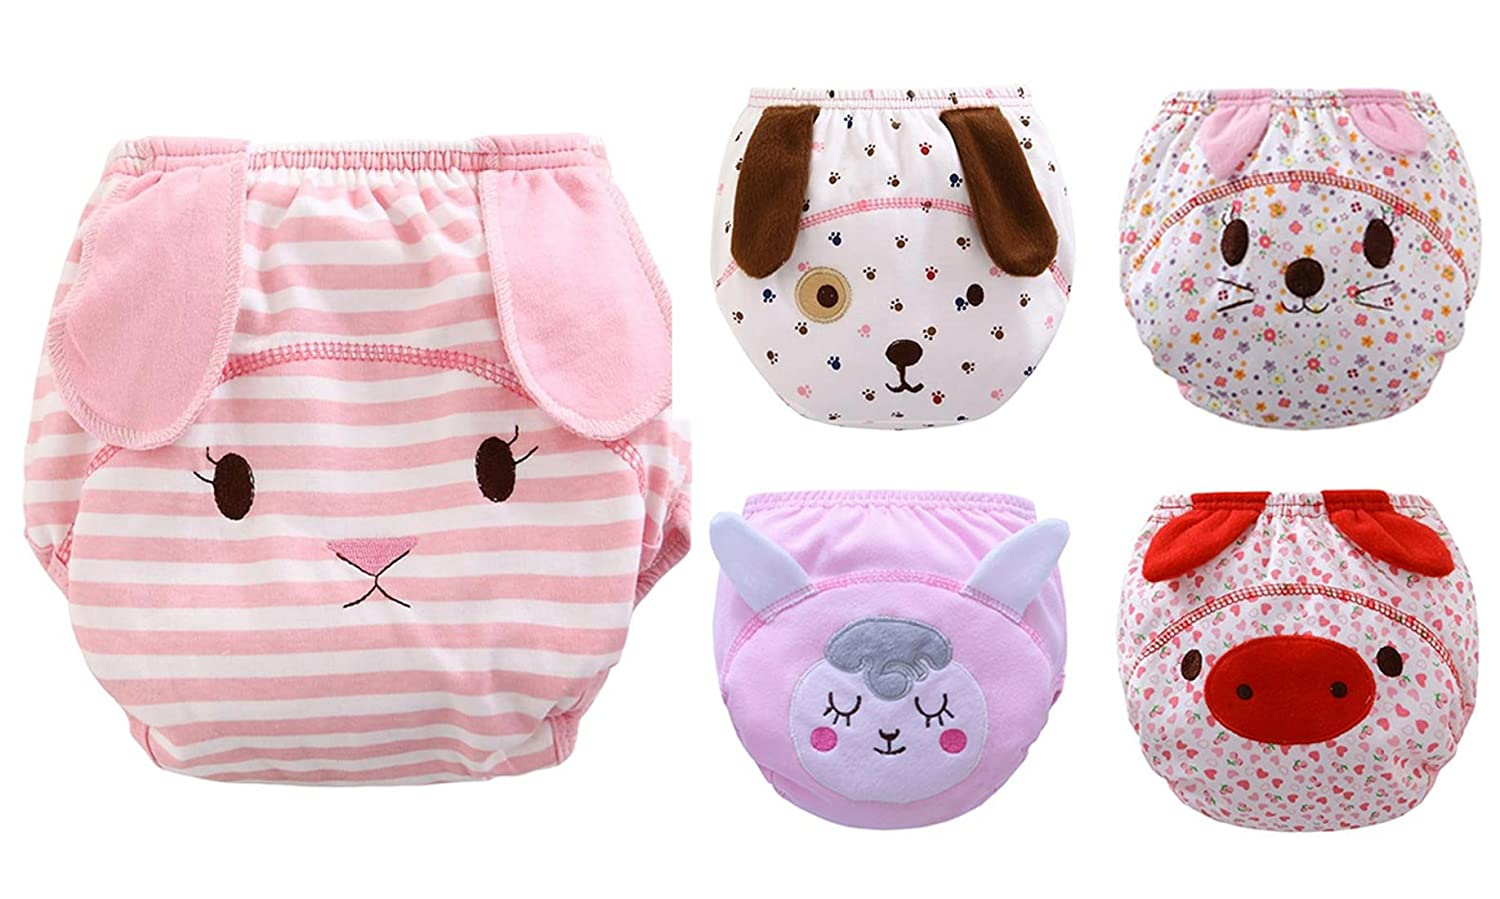 HANIBEIWA Girls Boys Training Pants Toddler Training Underwear Reusable Waterproof Potty 5 Pack